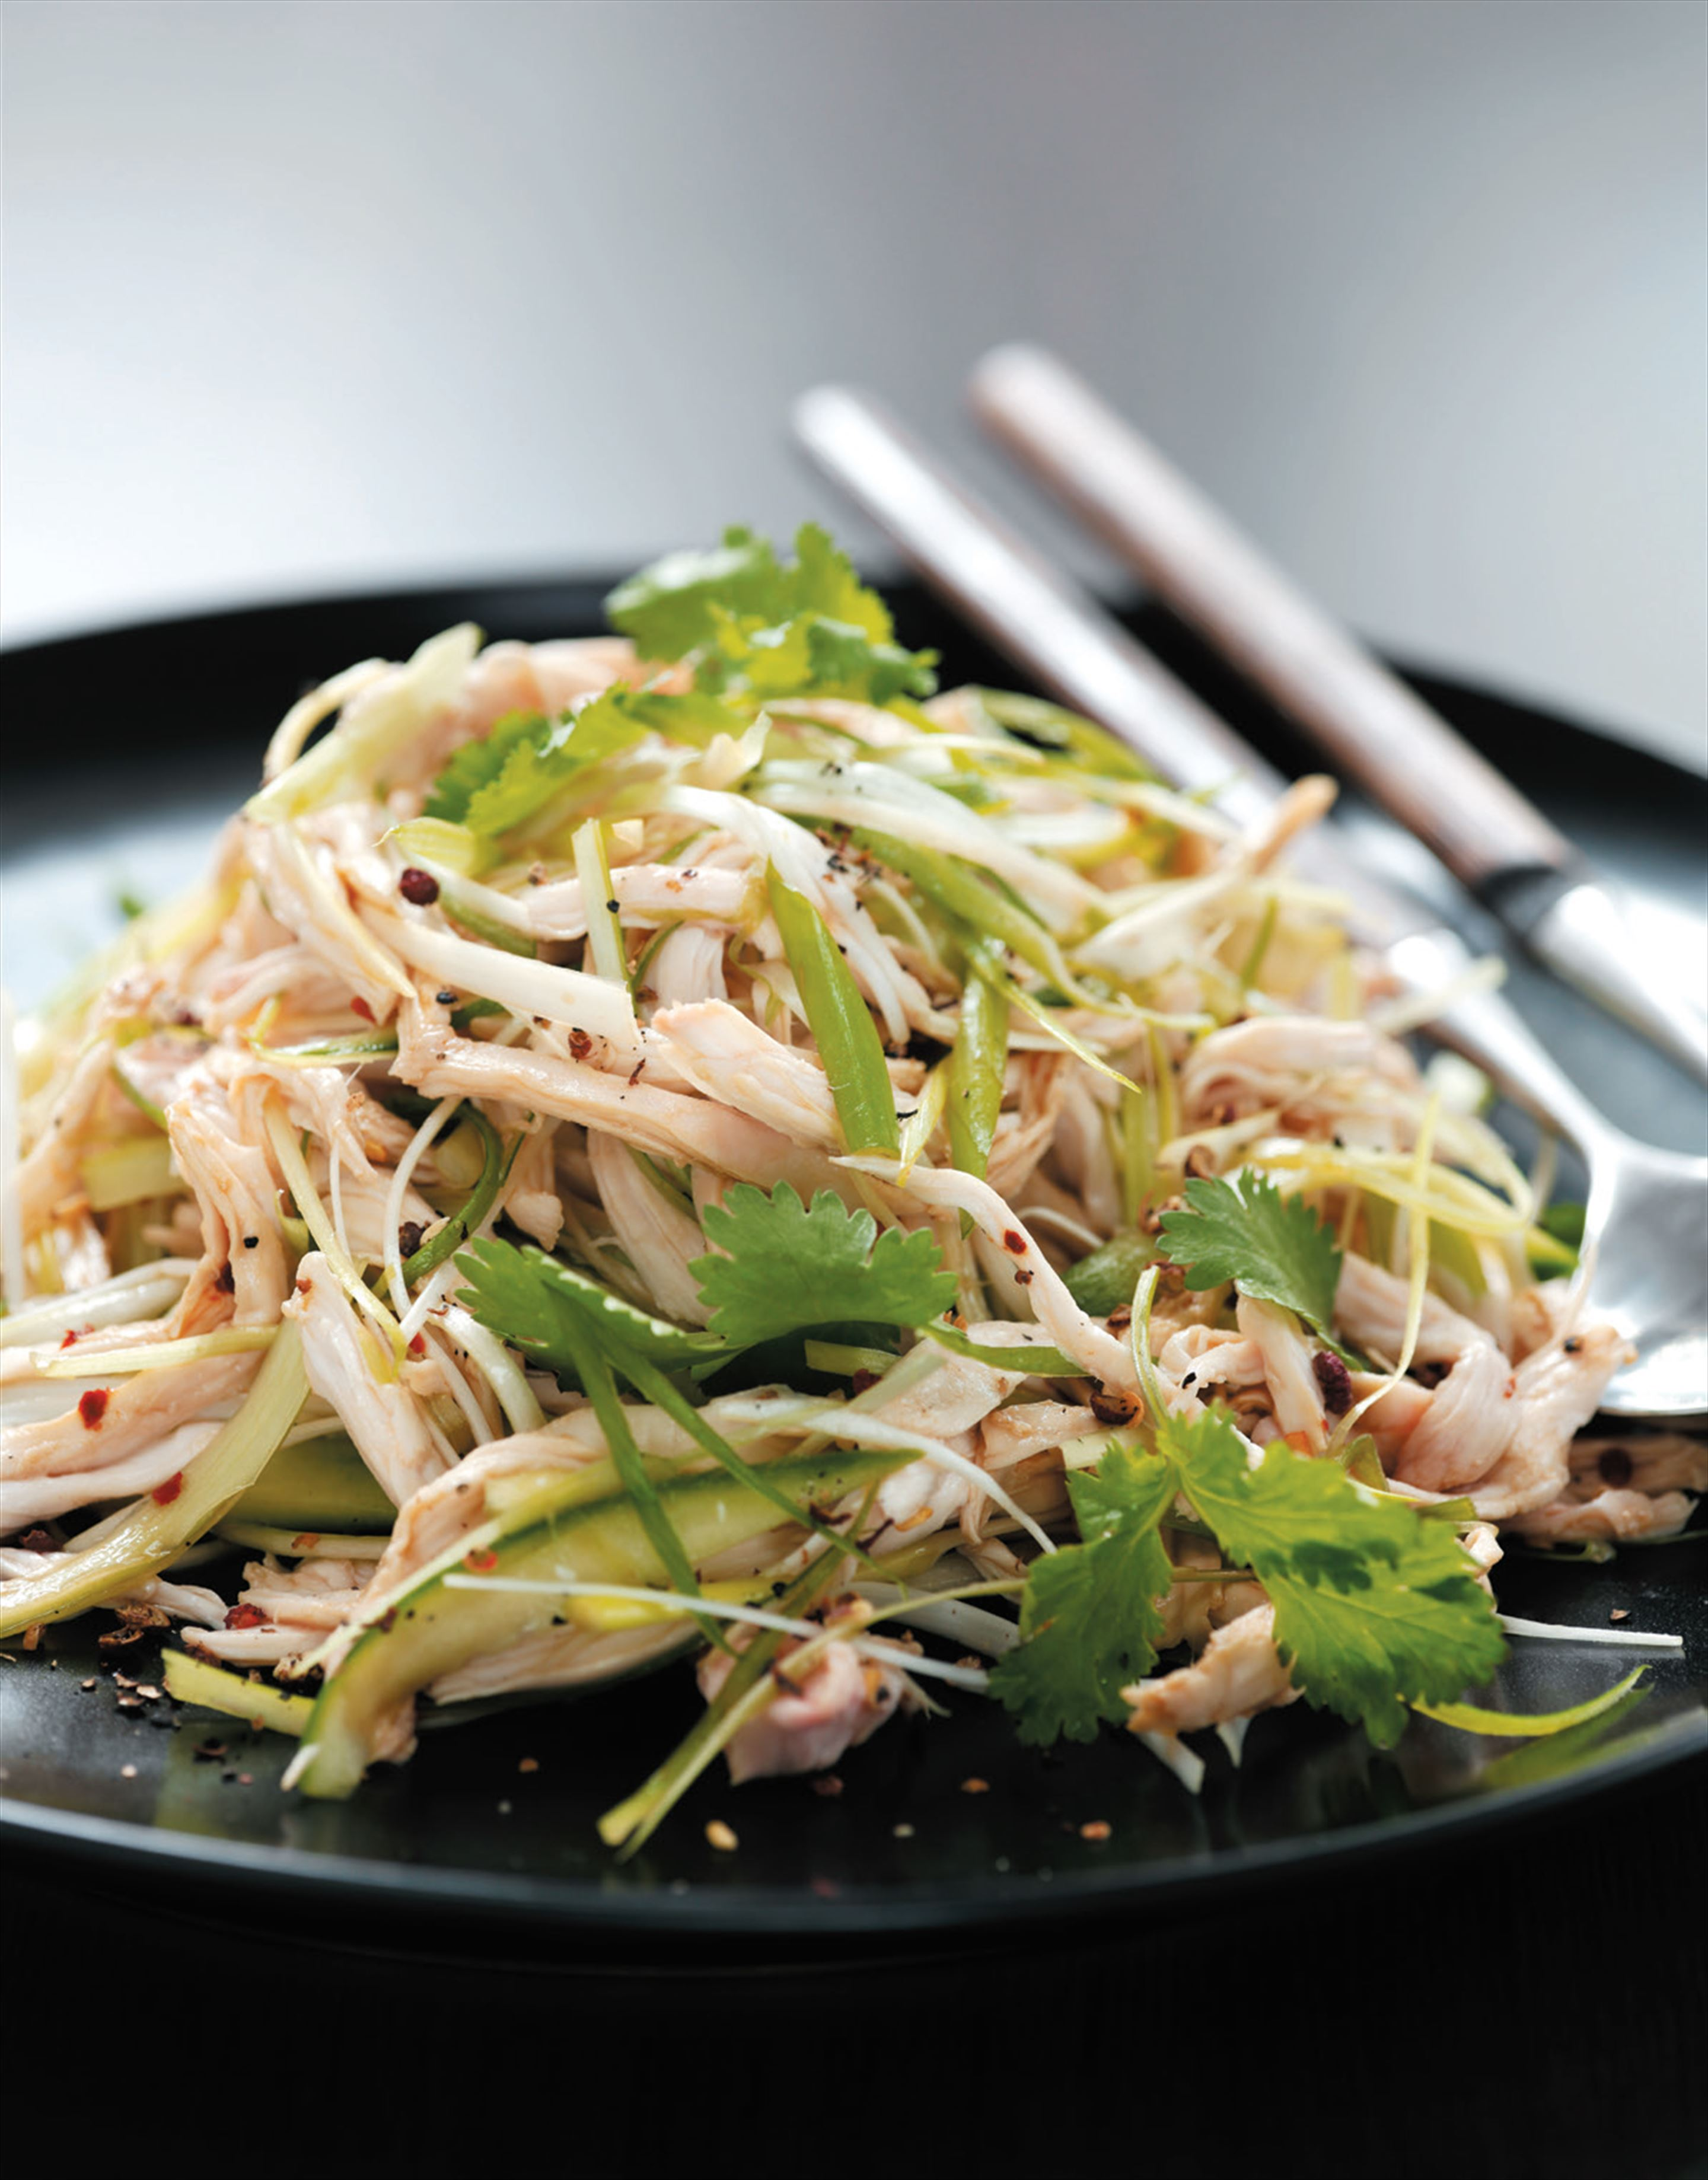 Sichuan chicken salad